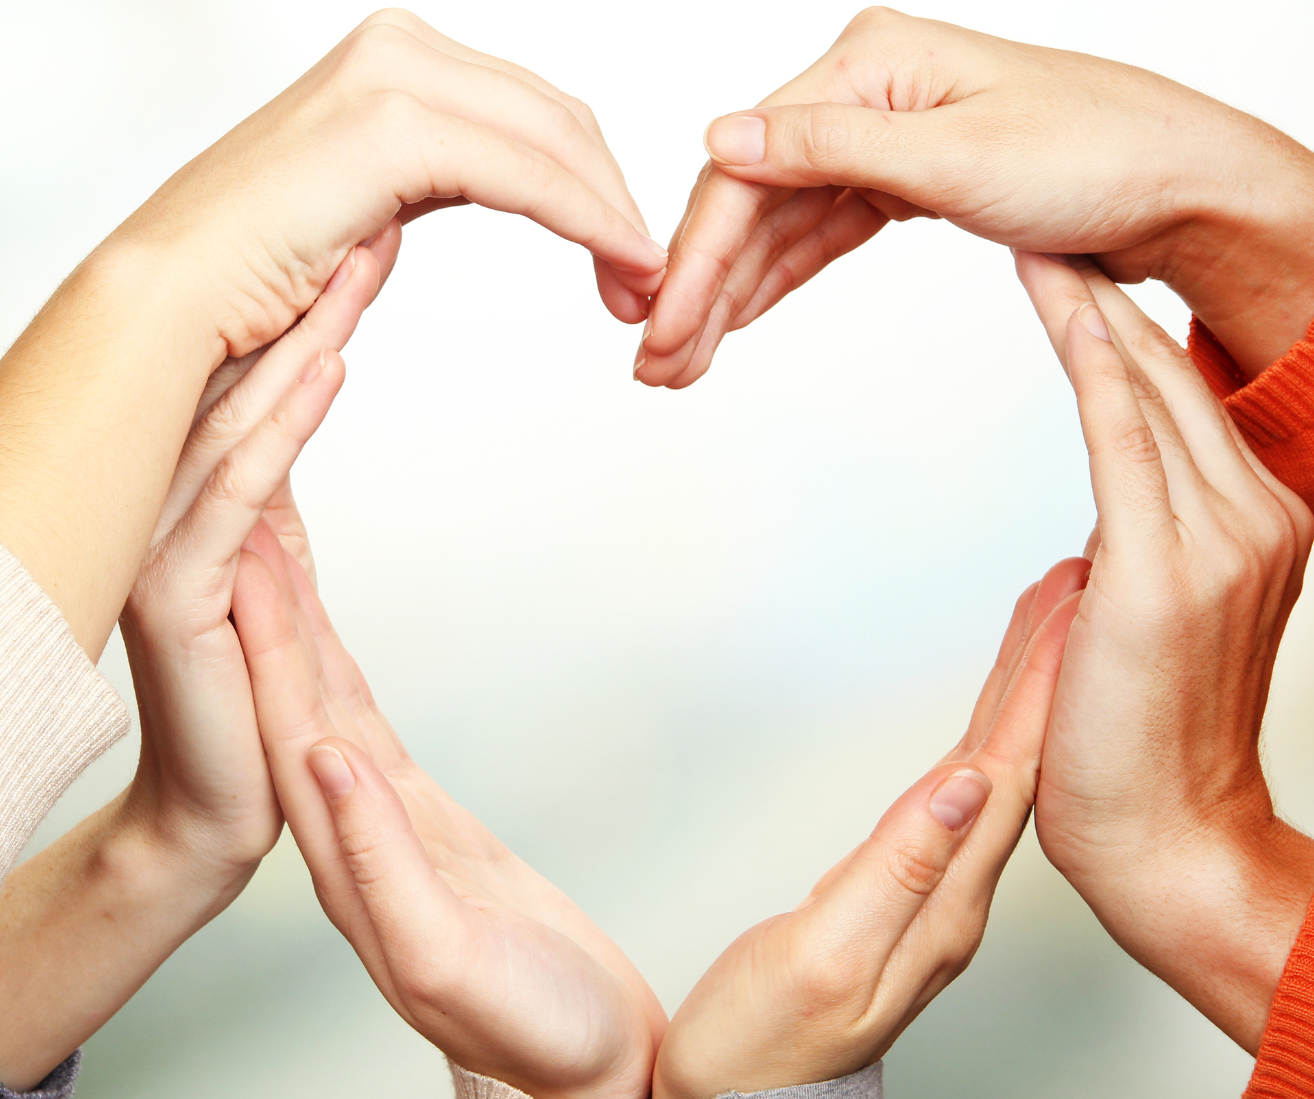 Human hands in heart shape on bright background_edited.jpg